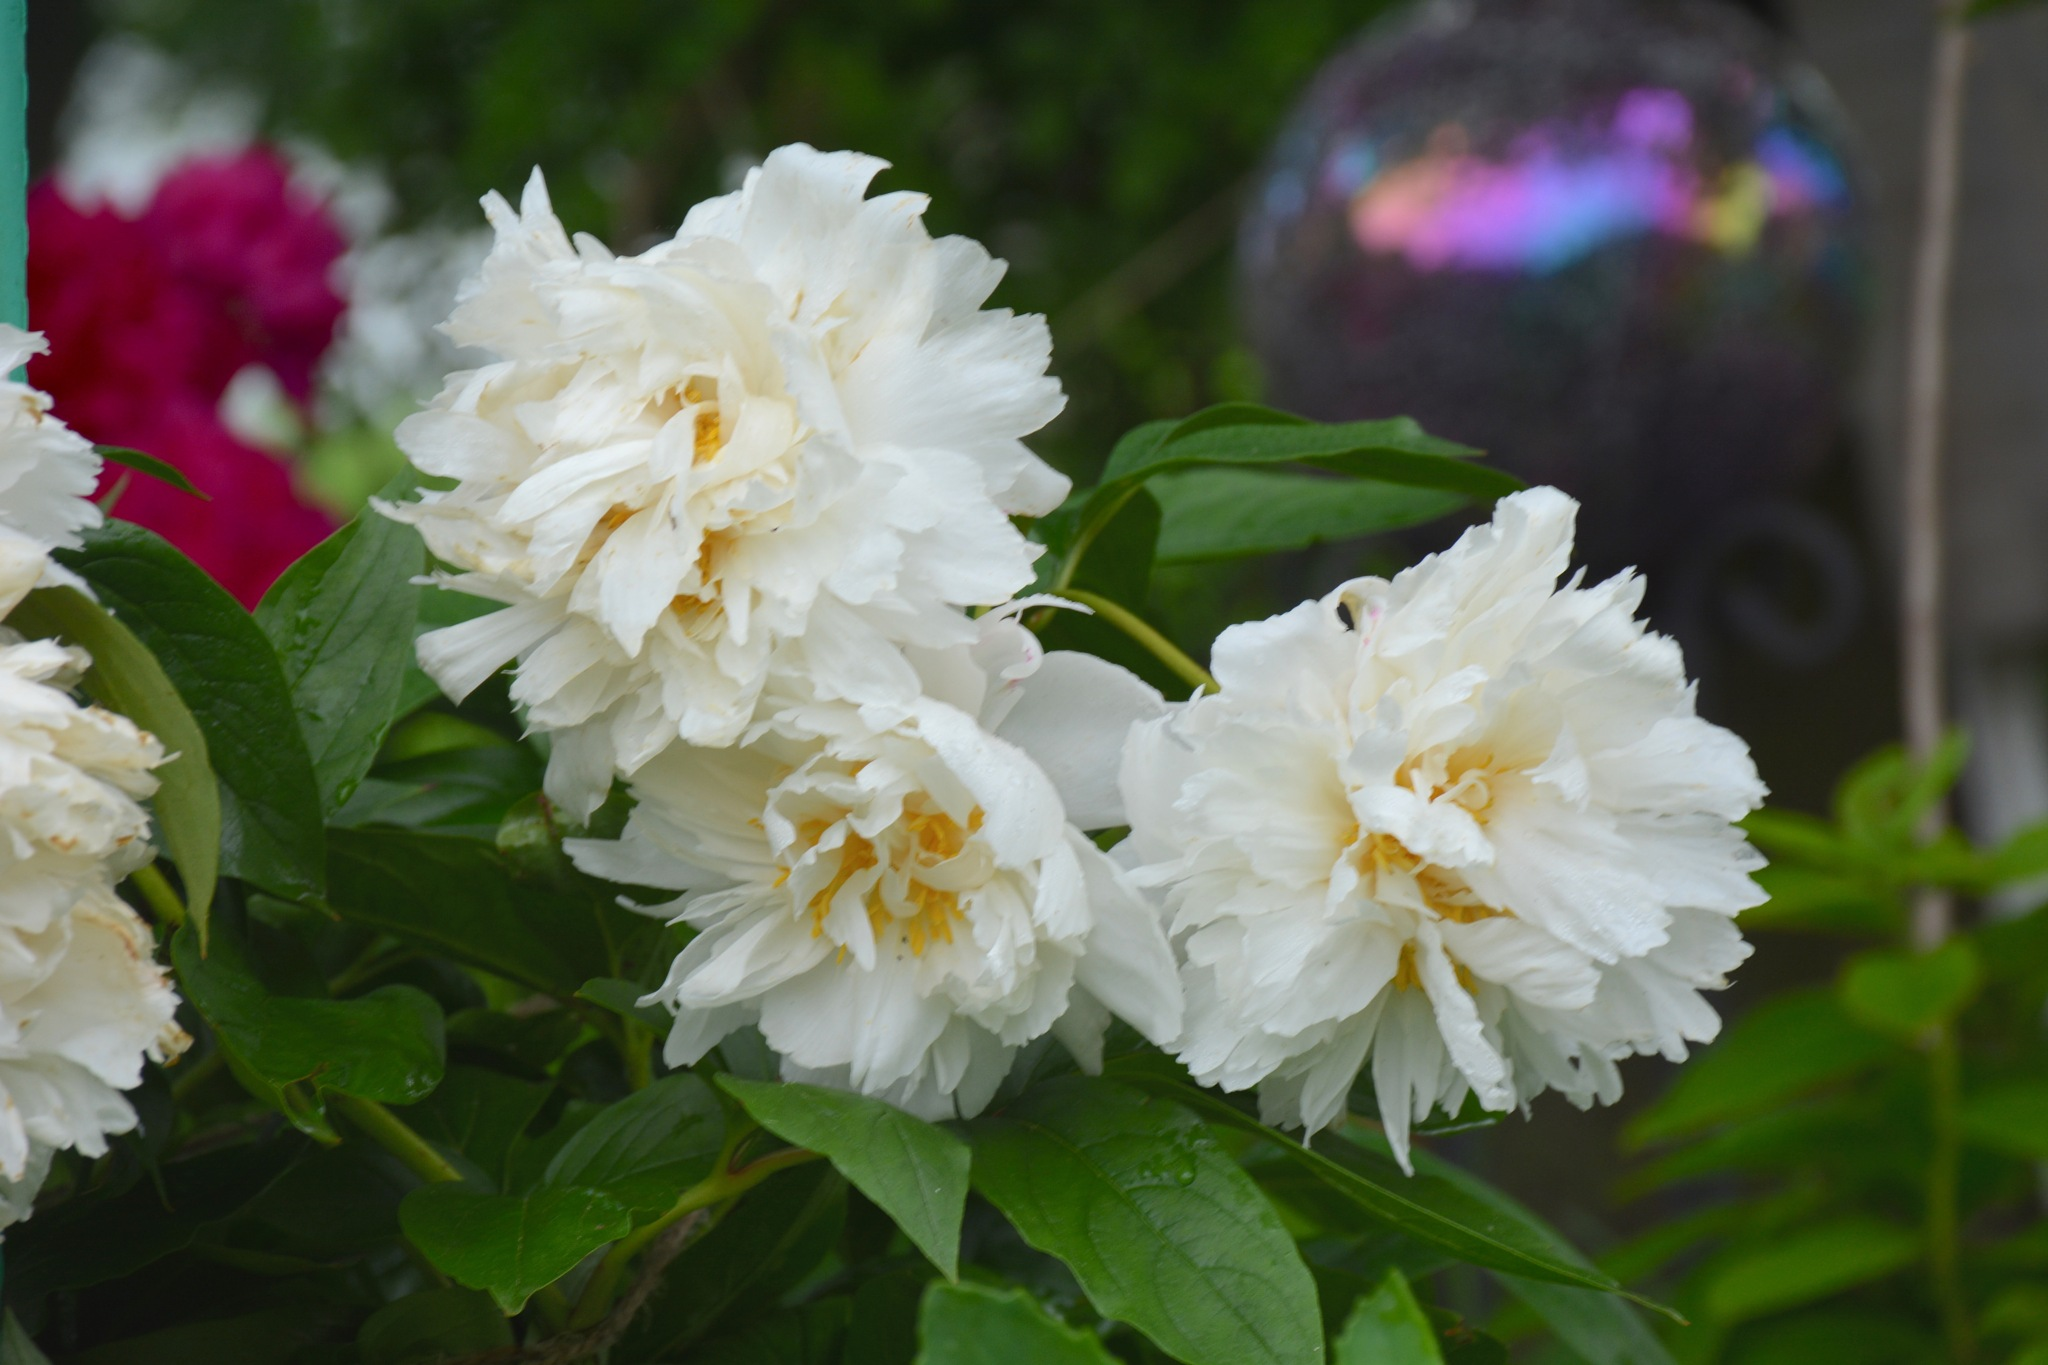 Lovely White Peonies by suzanne.kohr